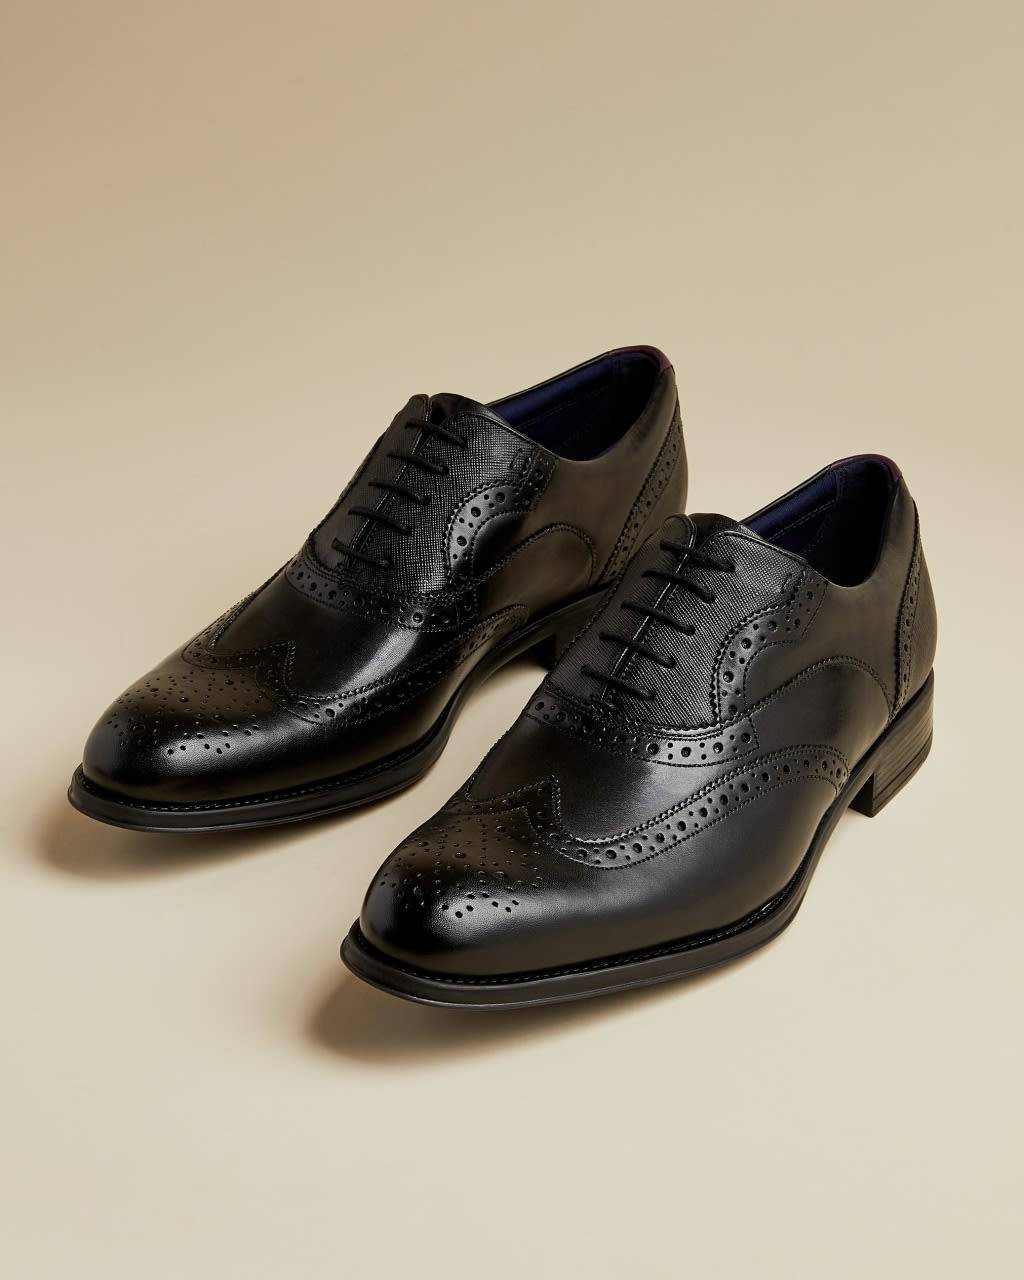 Ted Baker Classic Leather Brogues  - Black - Size: UK 9 (EU 43)